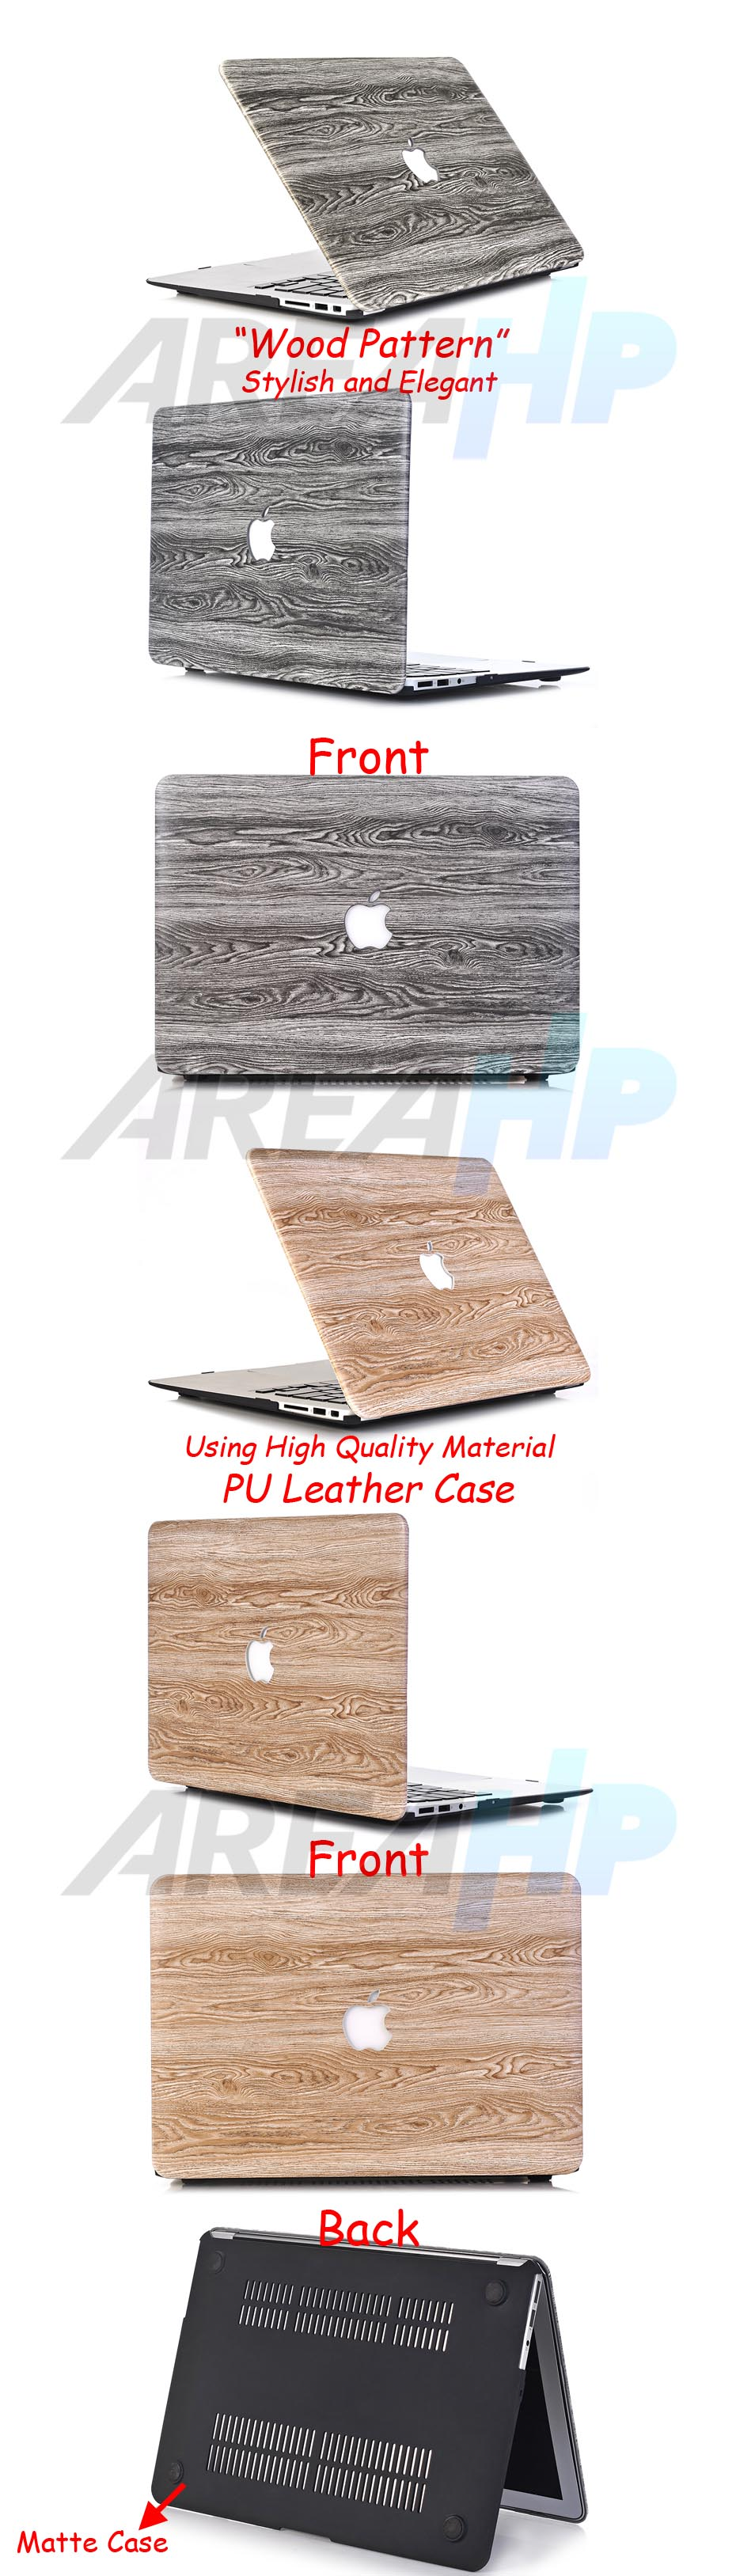 Wood Patern Case Macbook Overview